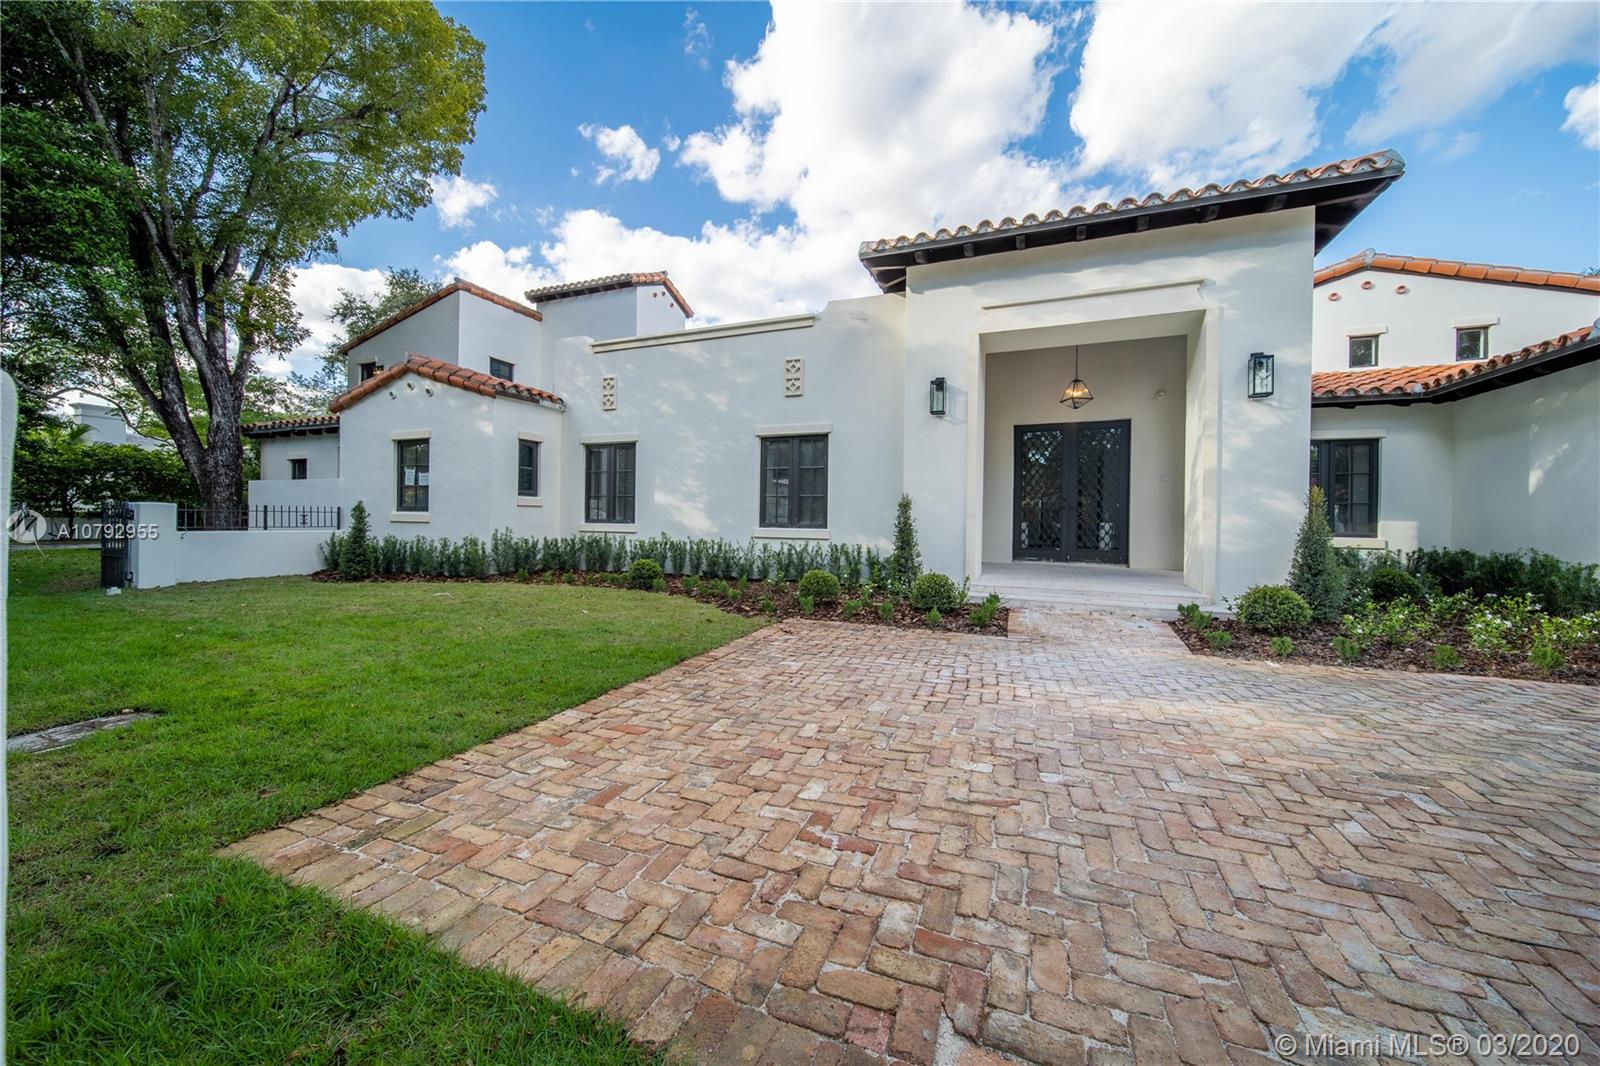 911 Catalonia Ave, Coral Gables, FL 33134